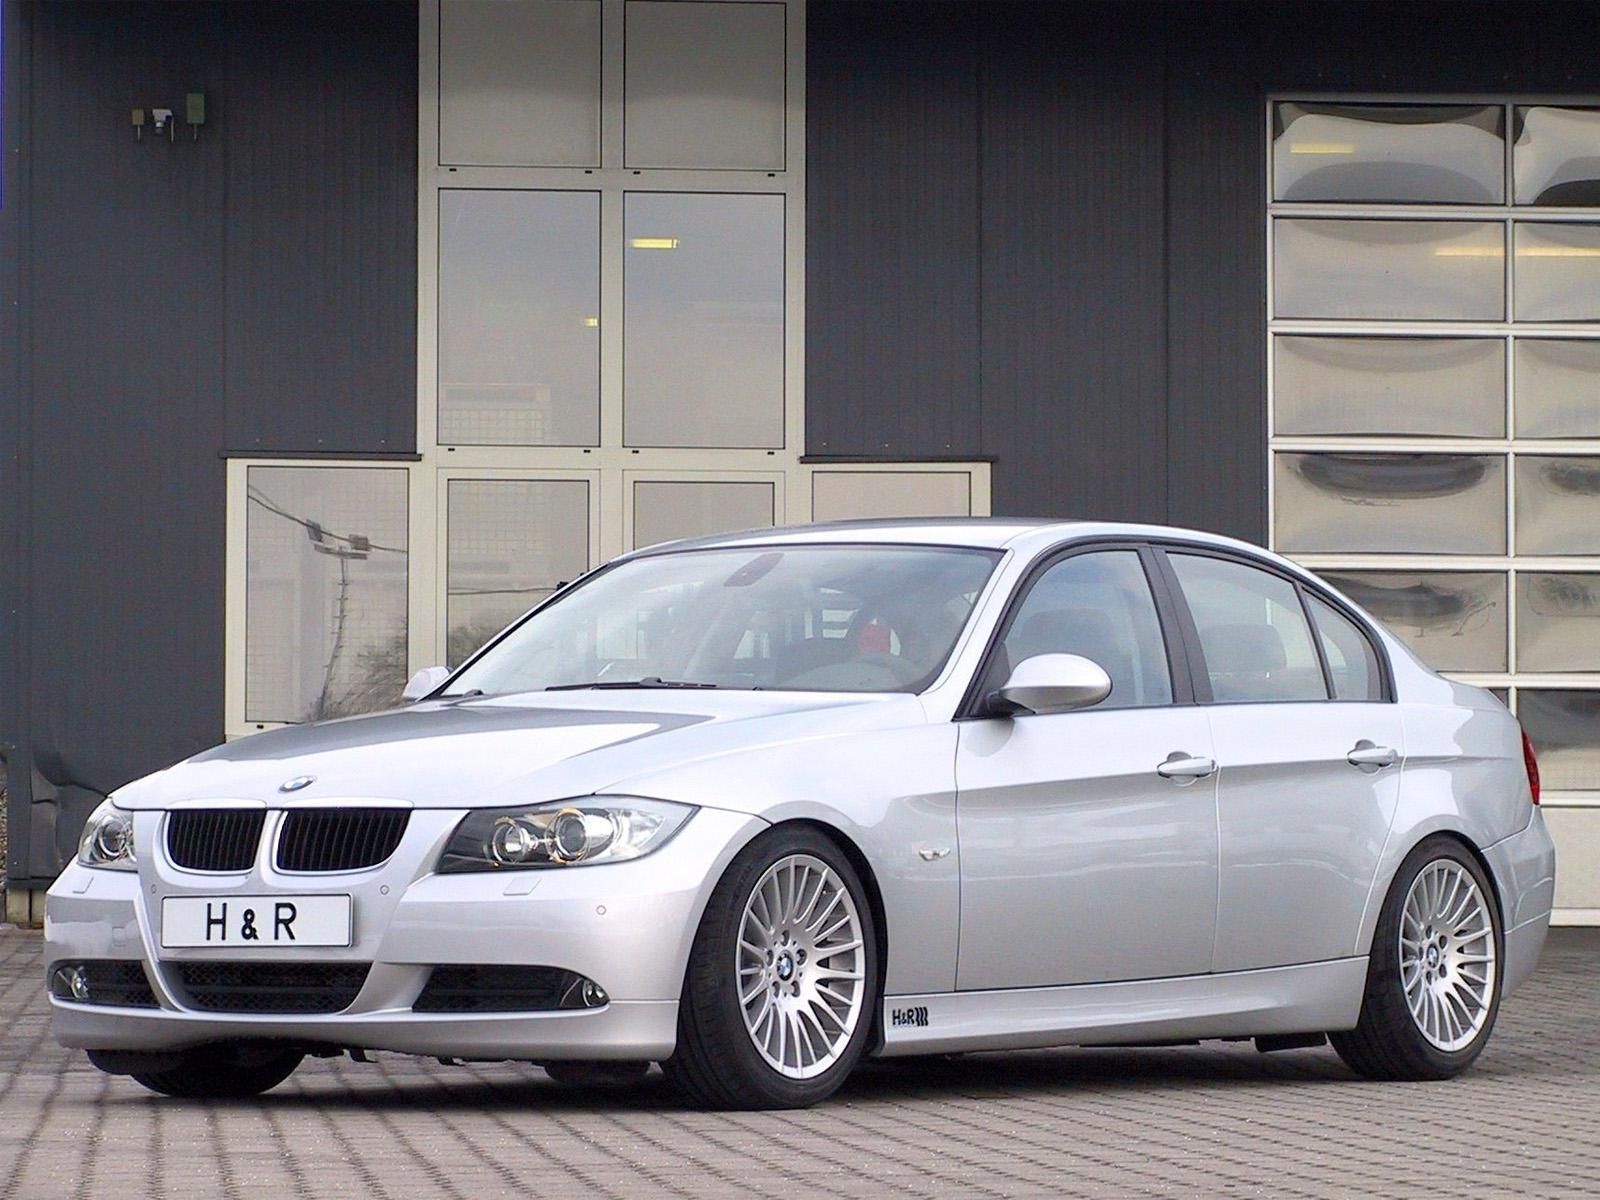 h r springs bmw e90 330i photos photogallery with 1 pics. Black Bedroom Furniture Sets. Home Design Ideas